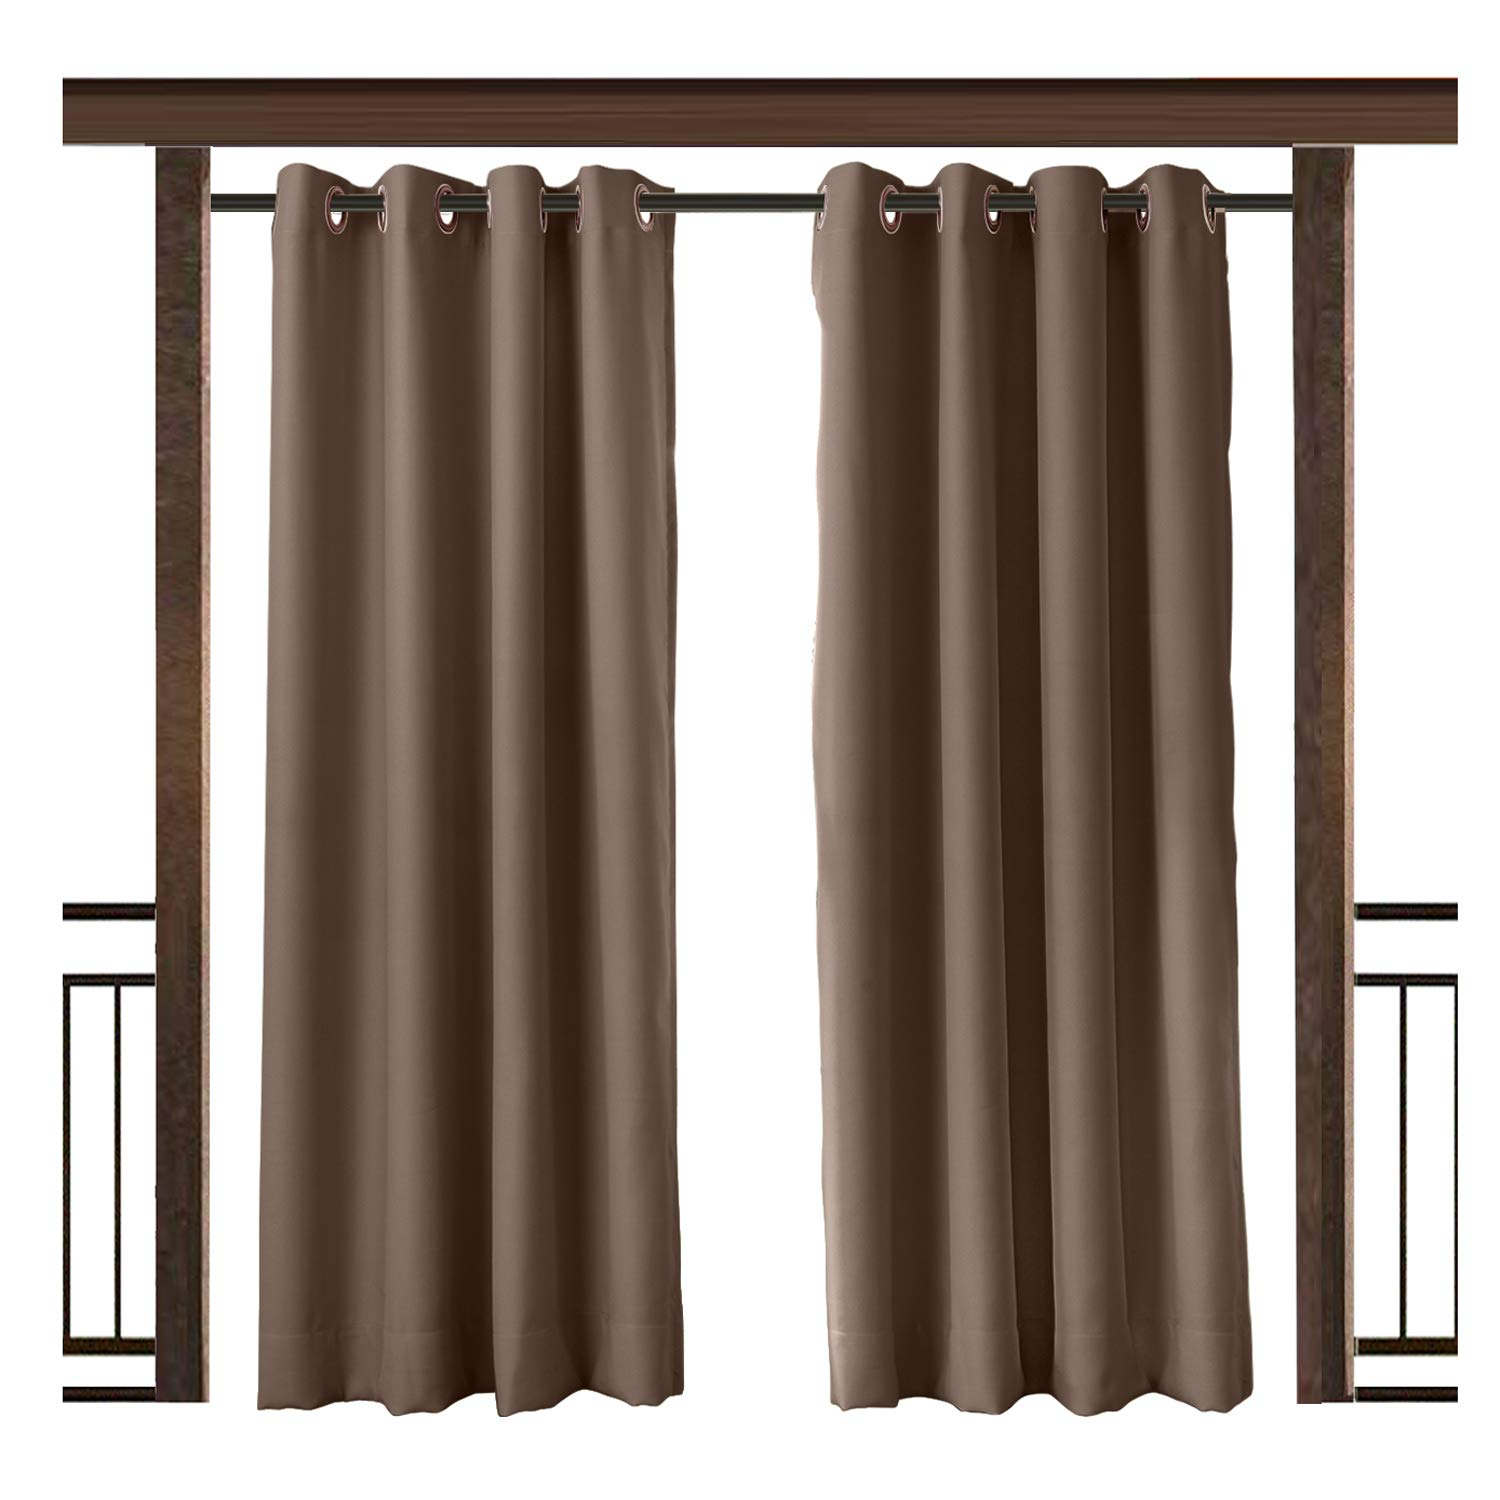 TWOPAGES Outdoor Curtain Waterproof Grommet Drape Chocolate 100 W x 96 L Inch, For Front Porch Pergola Cabana Covered Patio Gazebo Dock Beach Home (1 panel)